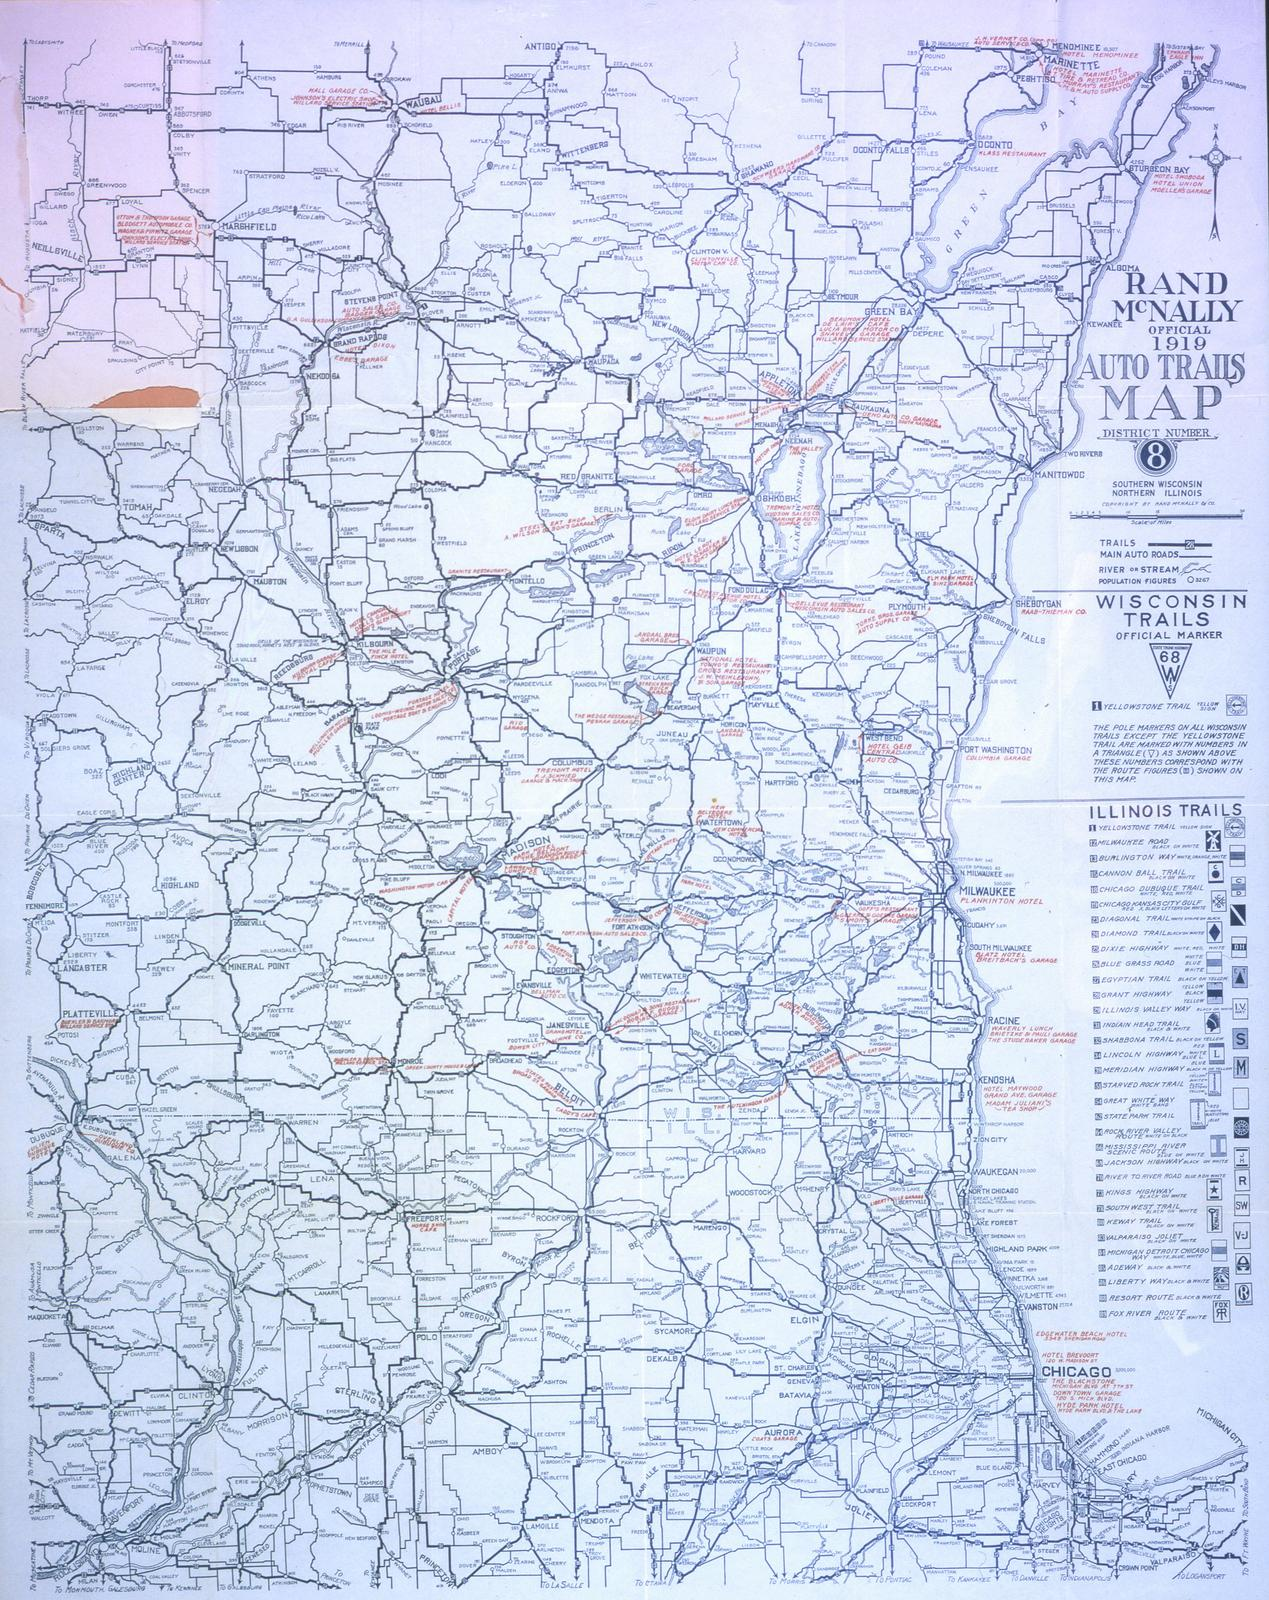 ECC Rand McNally official 1919 auto trails map District number